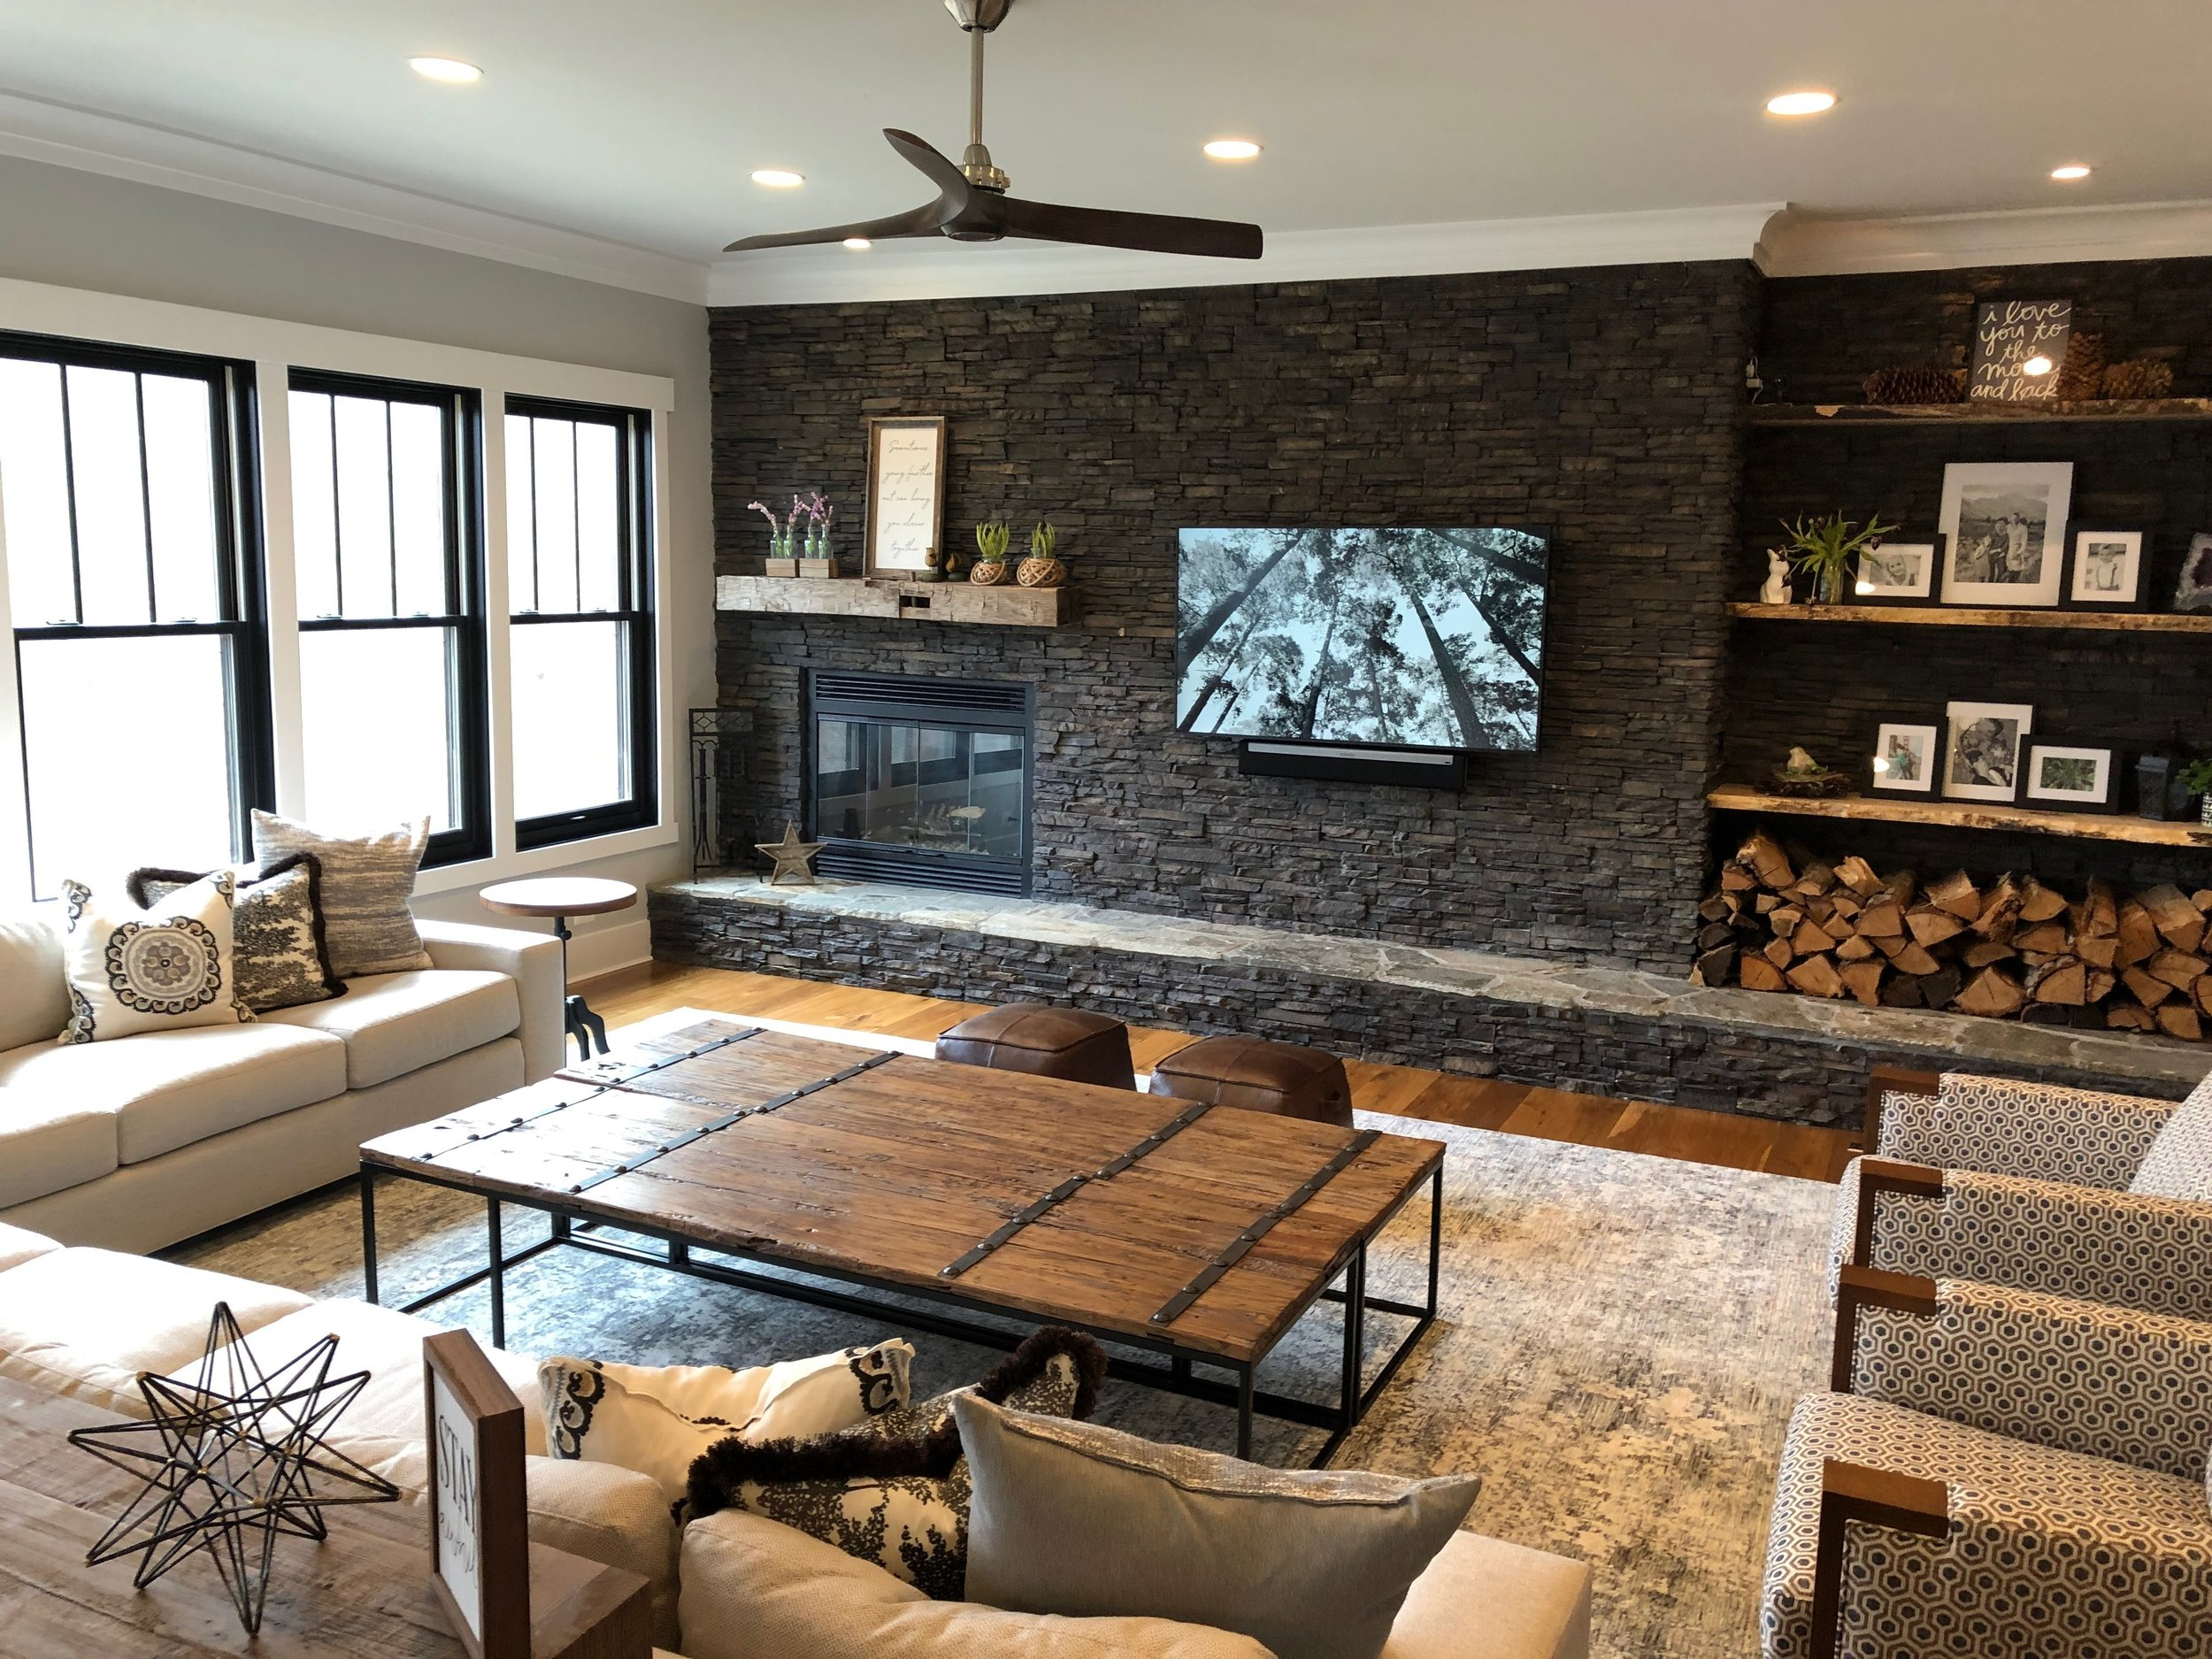 Family room with an off-center fireplace.